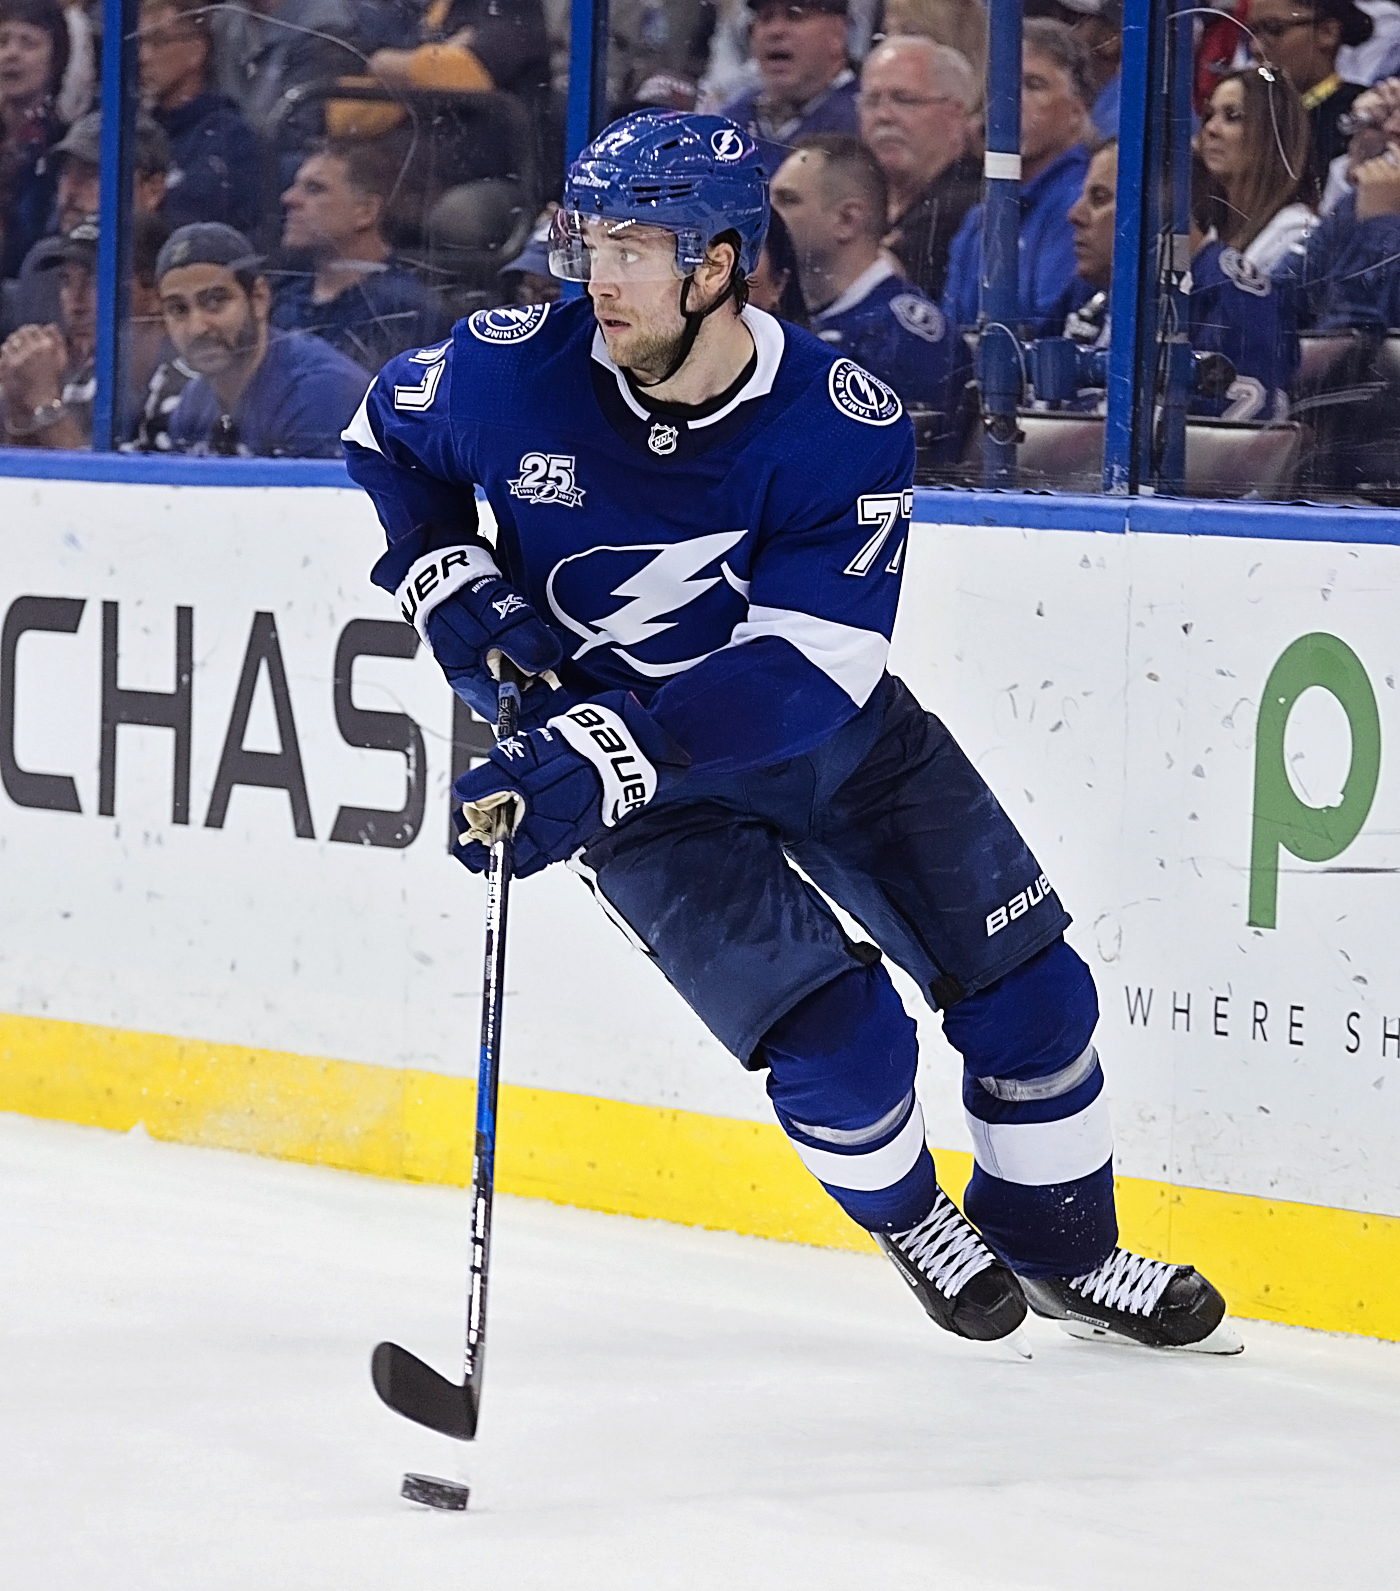 Hedman scored two goals and had two assists./CARMEN MANDATO